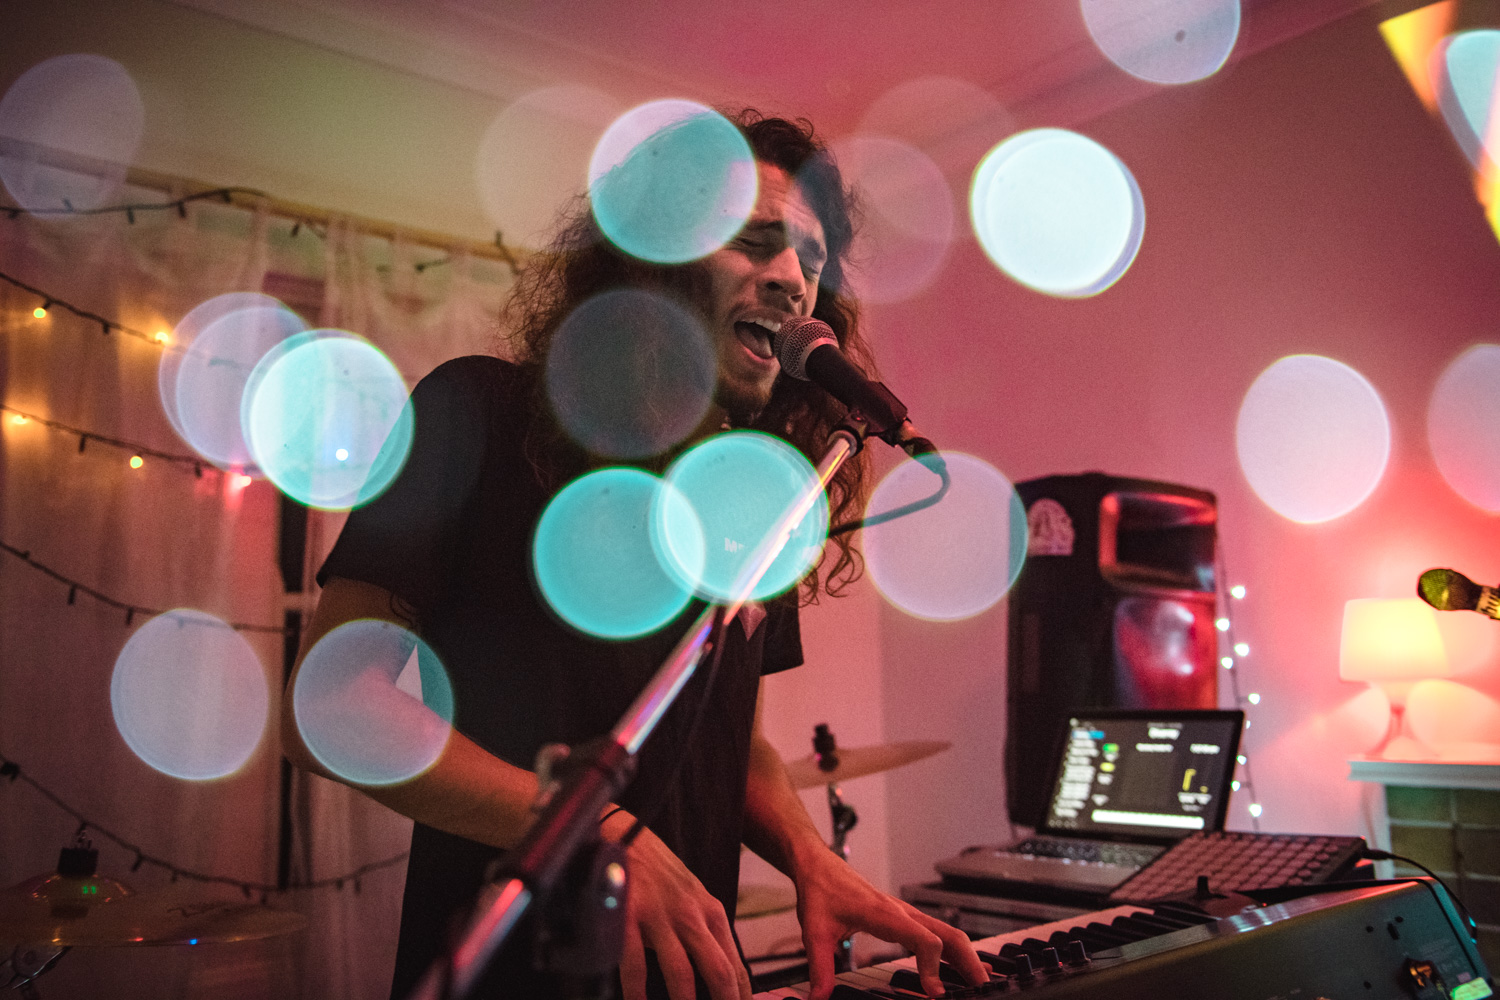 Skyepaint at Raave Tapes 'Shhh' Top Secret House Show - Photography by   Matthew Waddingham